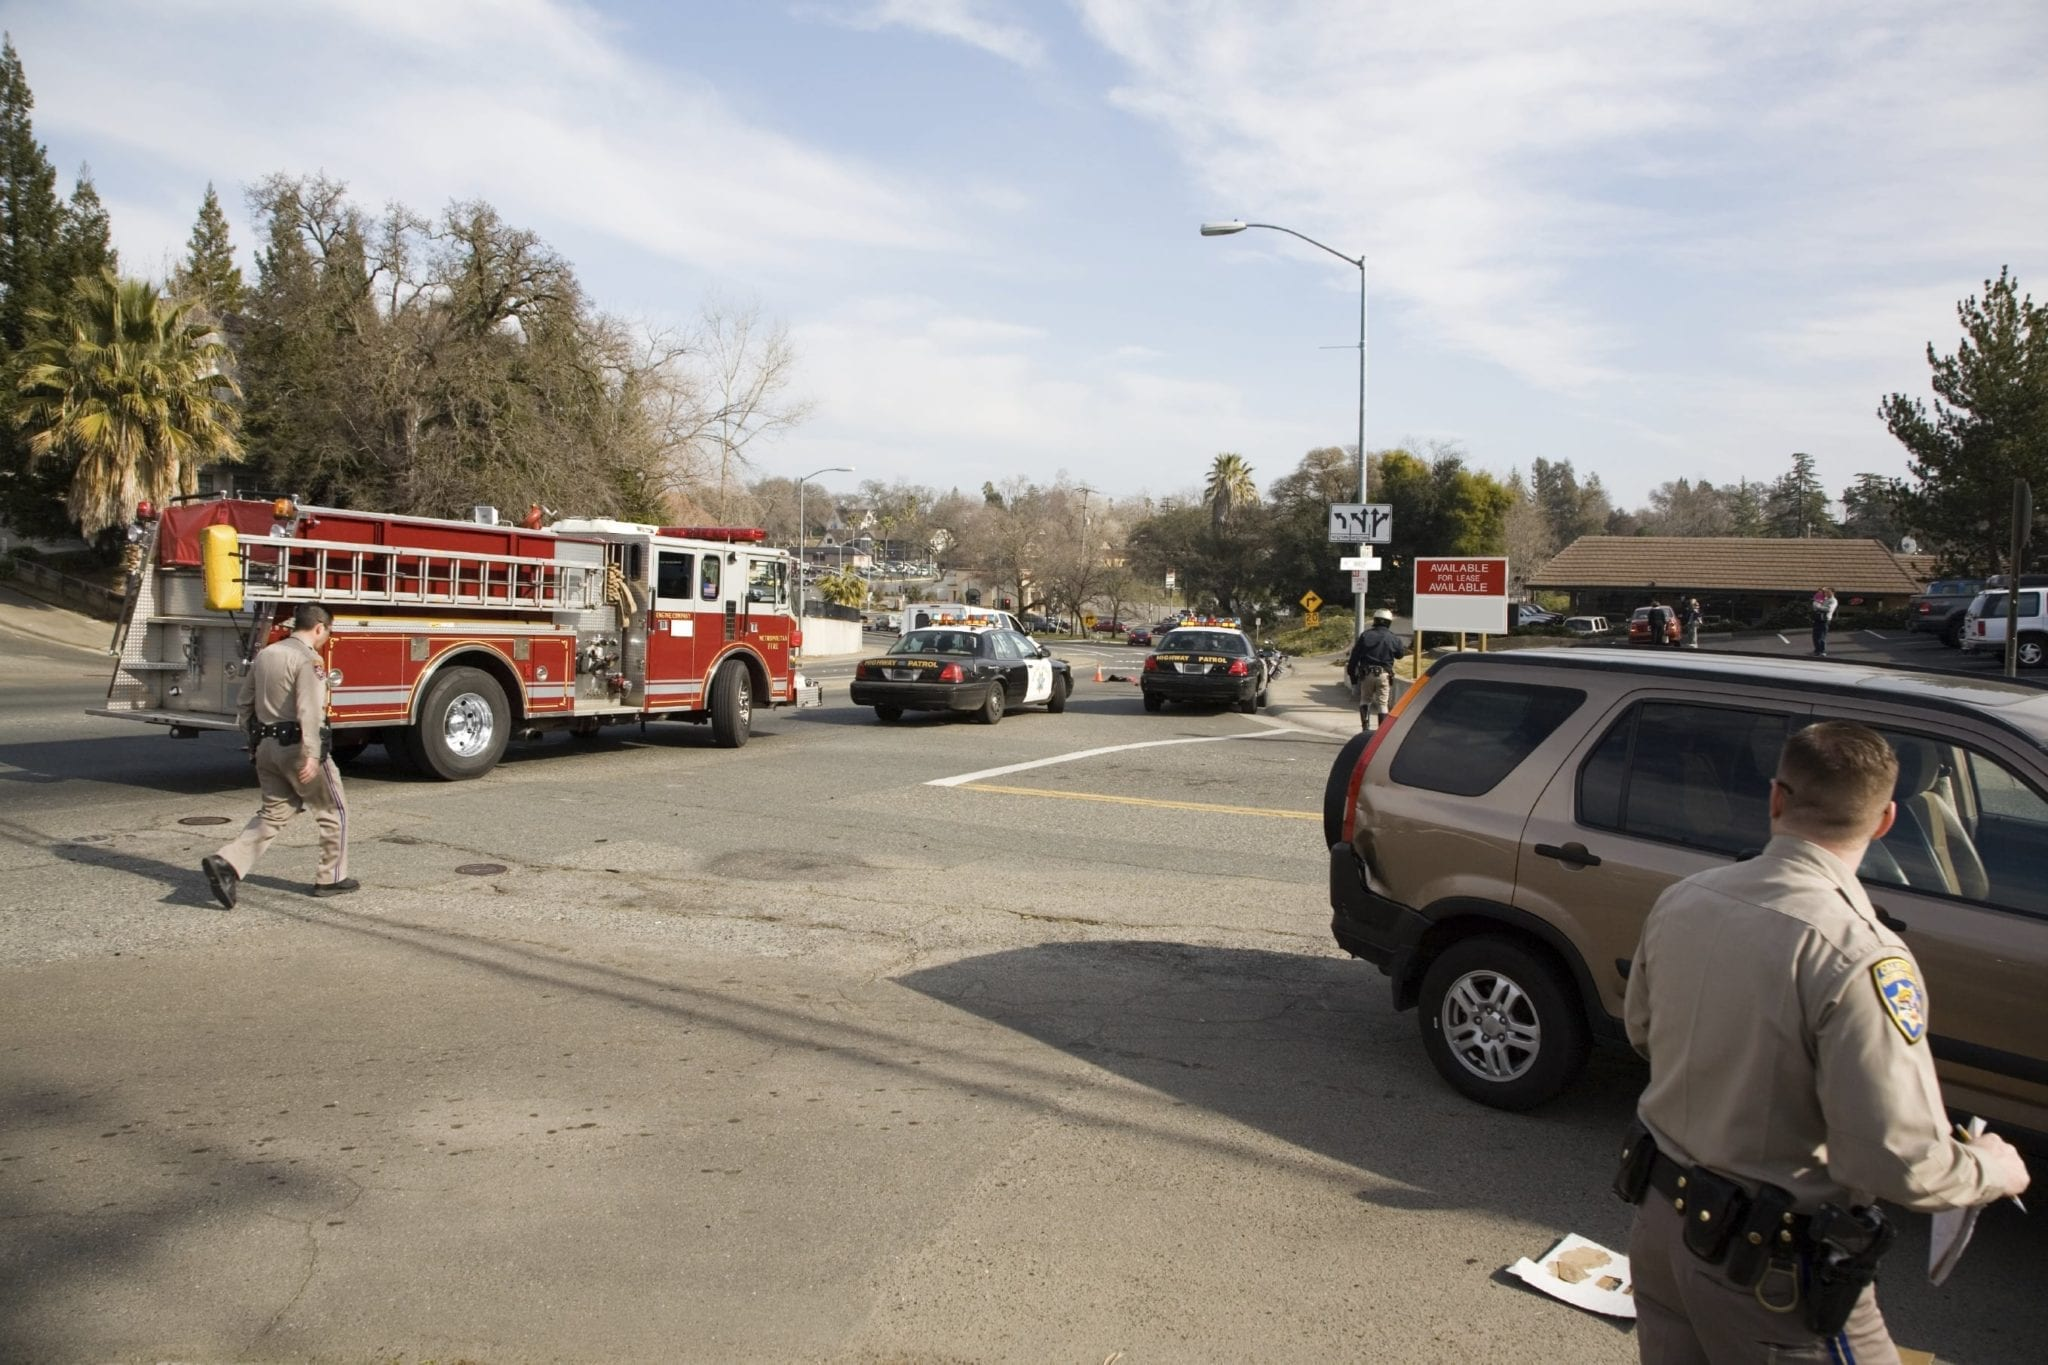 Colorado Springs Car Accident Attorneys Discuss Crash At City Intersection